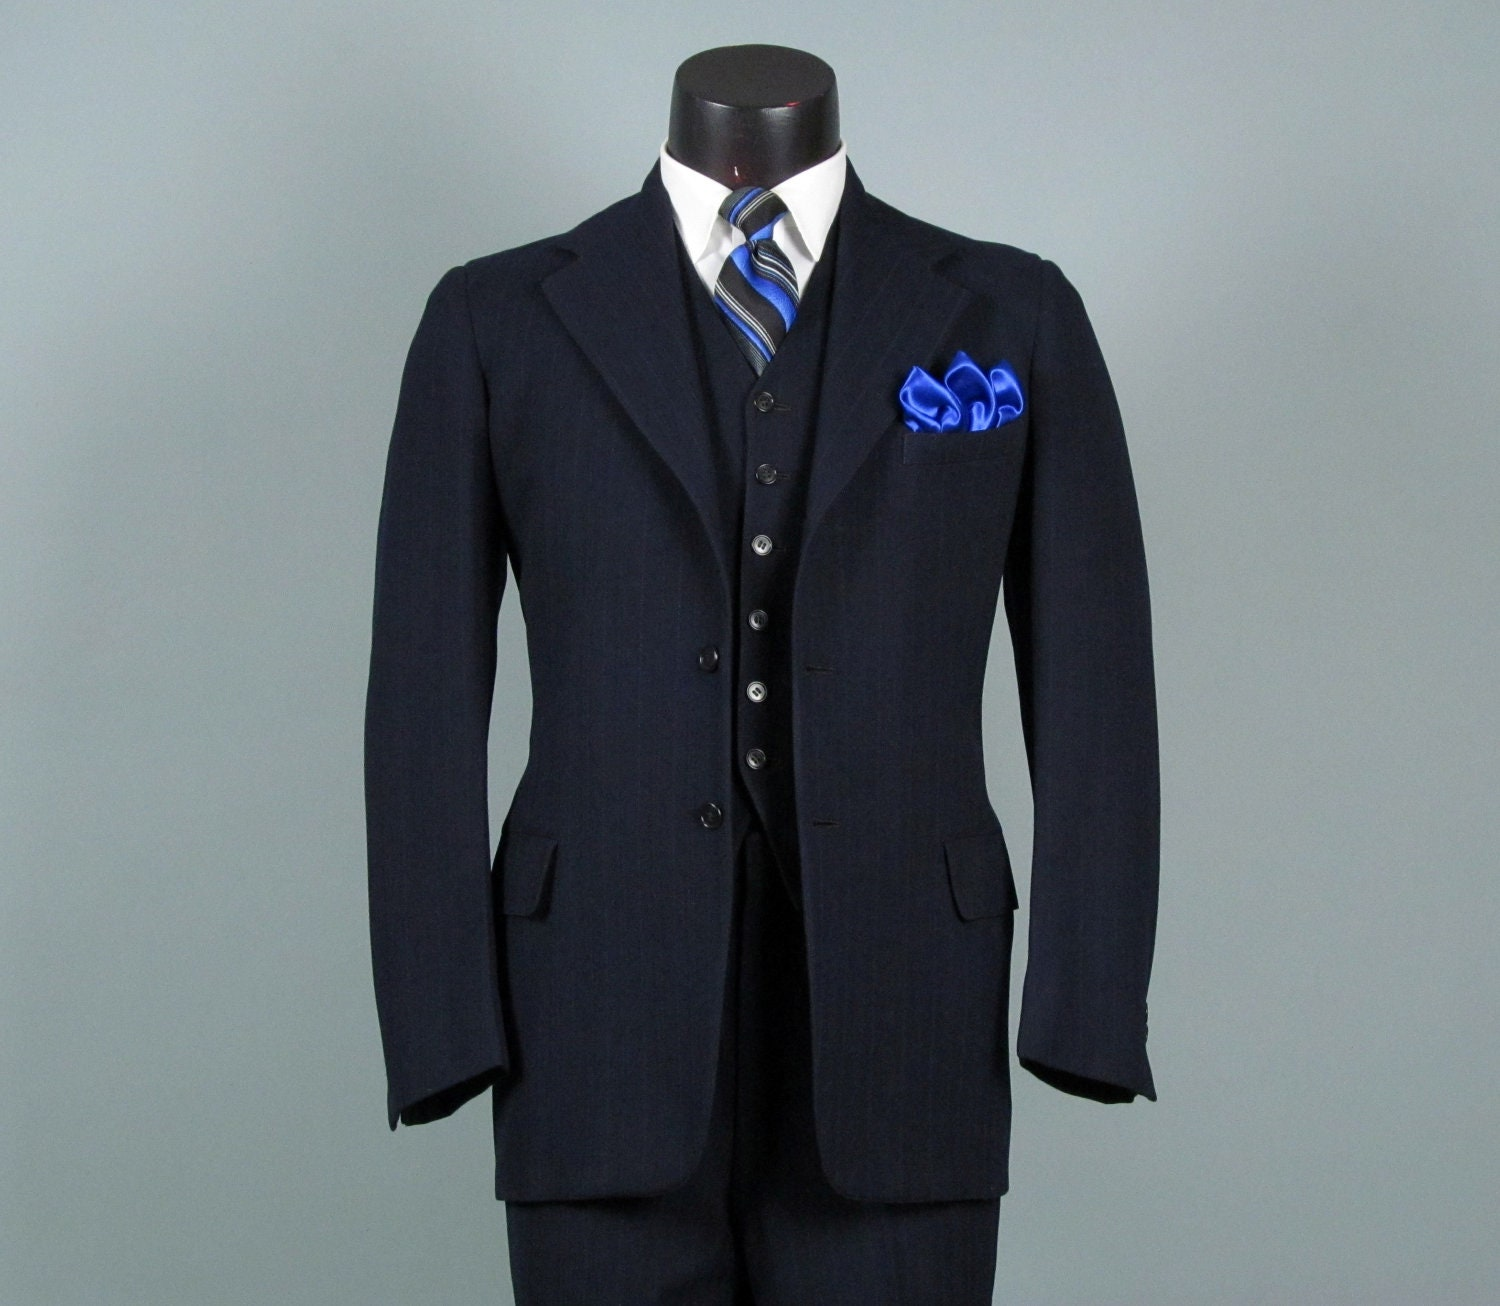 Vintage Three Piece Suit